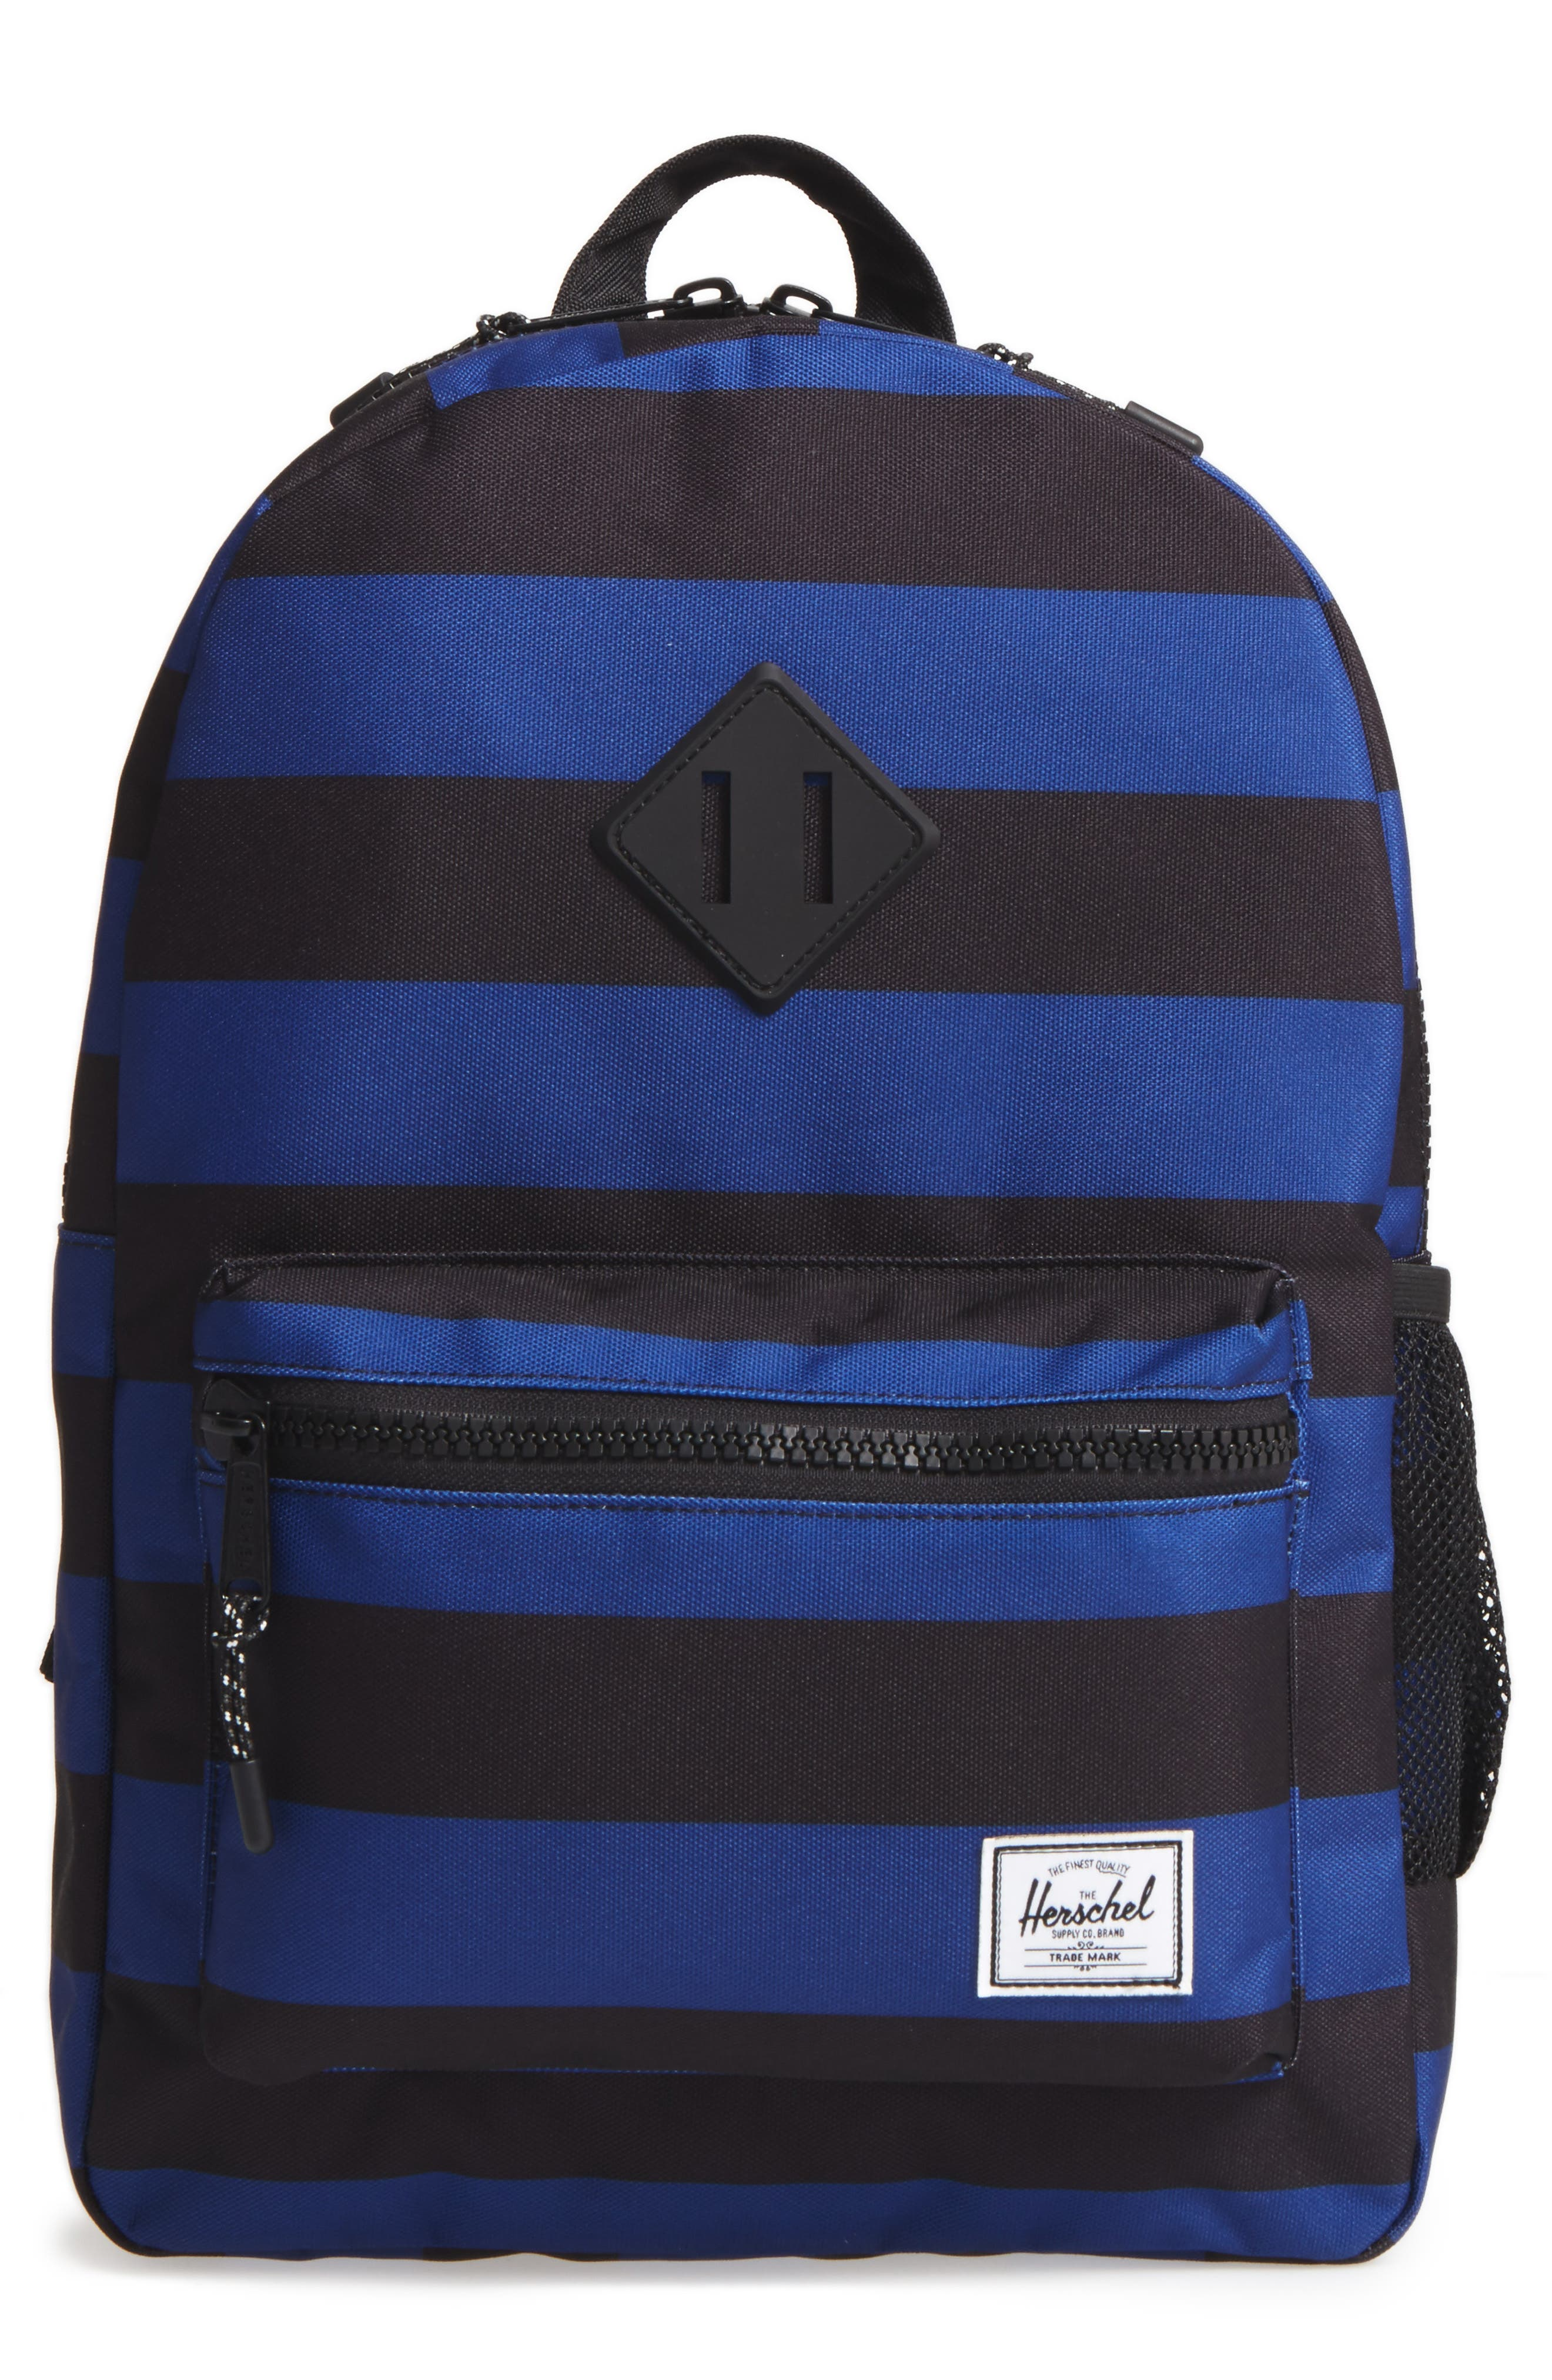 Heritage Youth Backpack,                             Main thumbnail 1, color,                             001